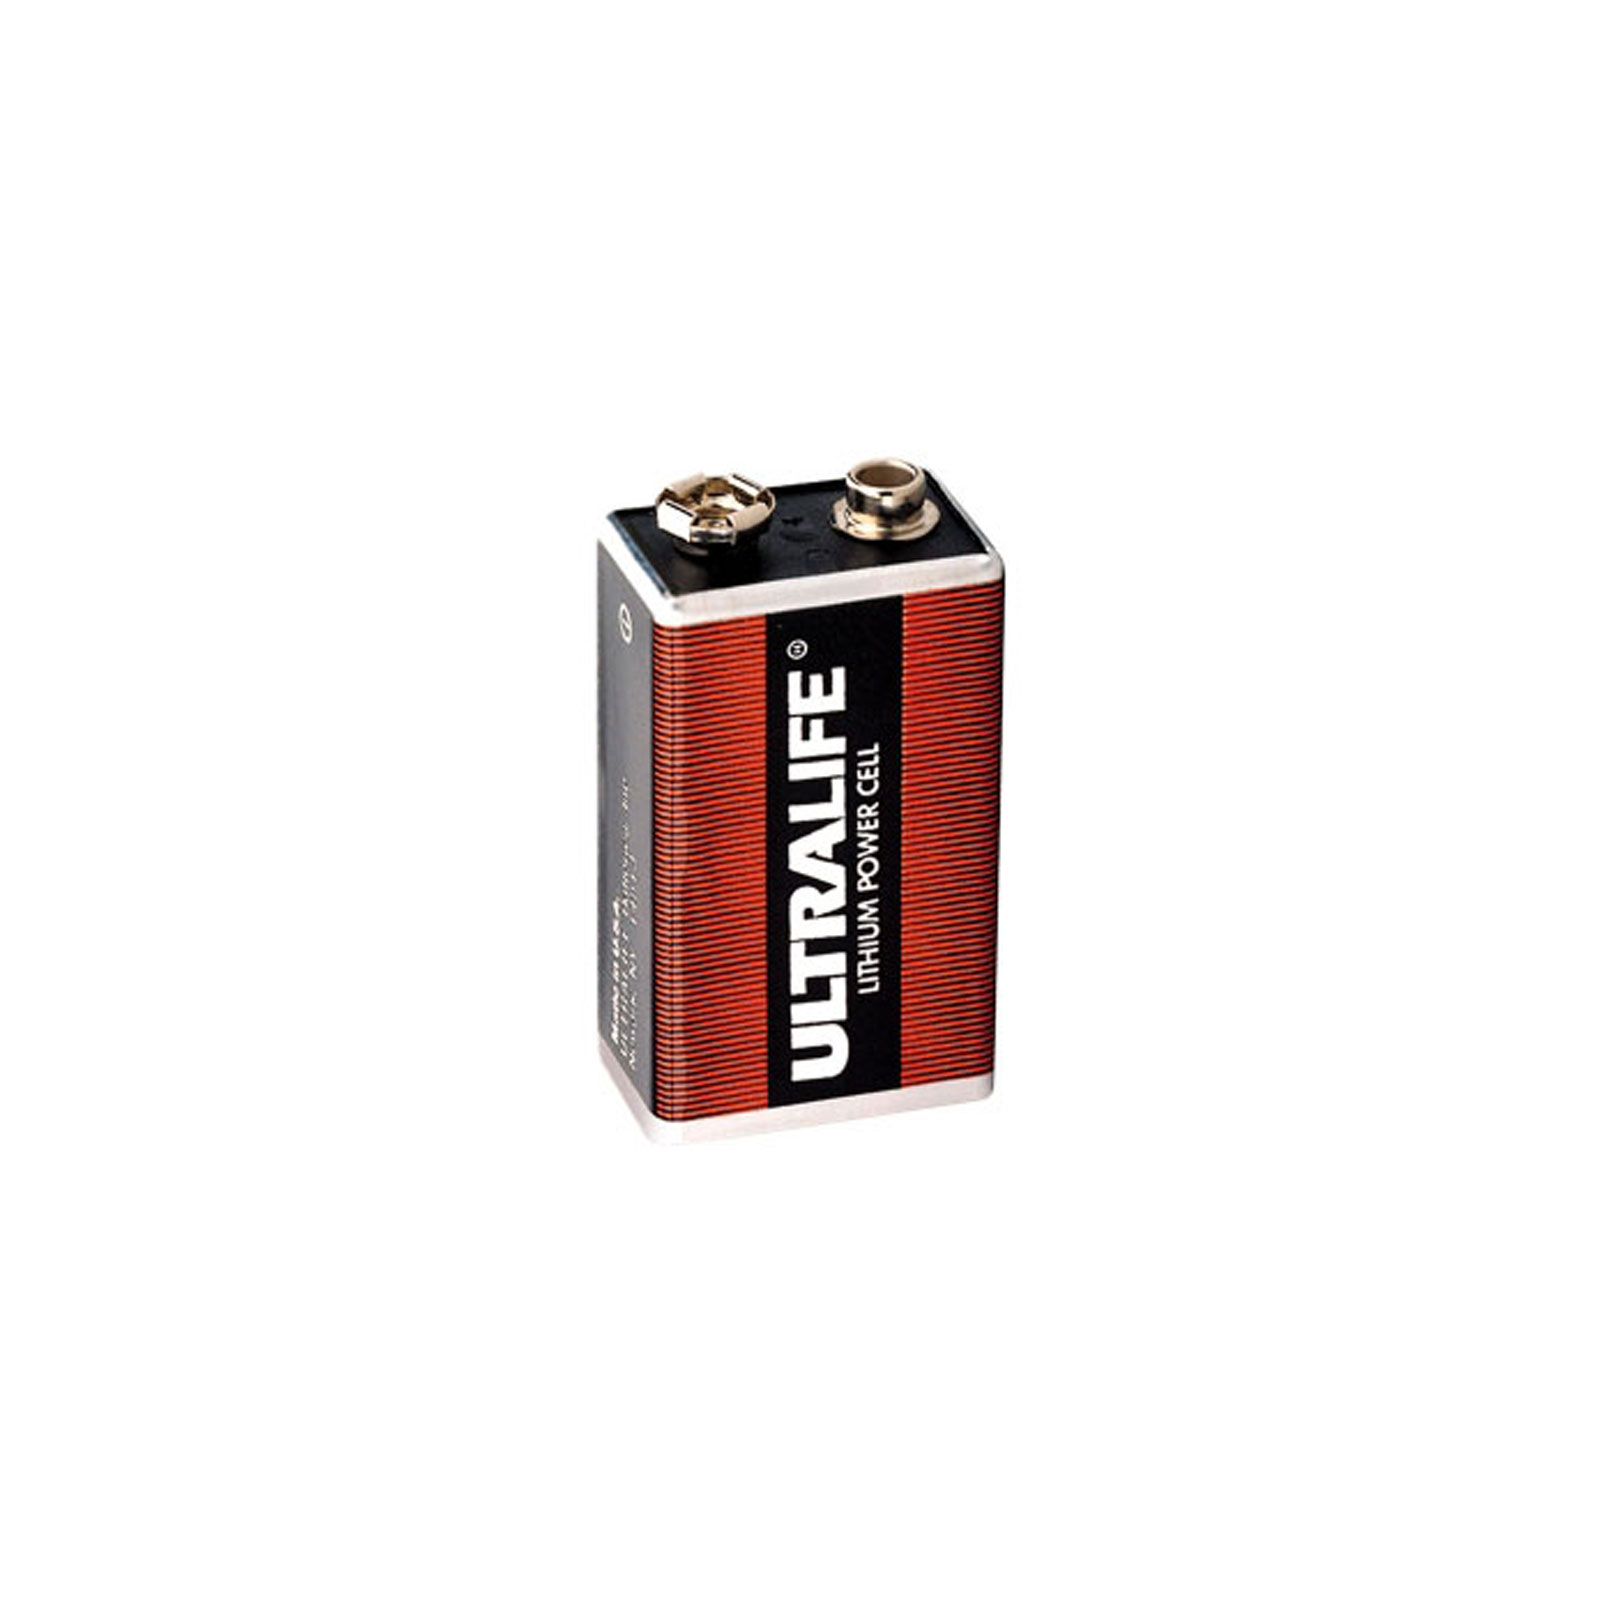 ultralife 9v photo lithium batteries ullth9v bulk 1200mah